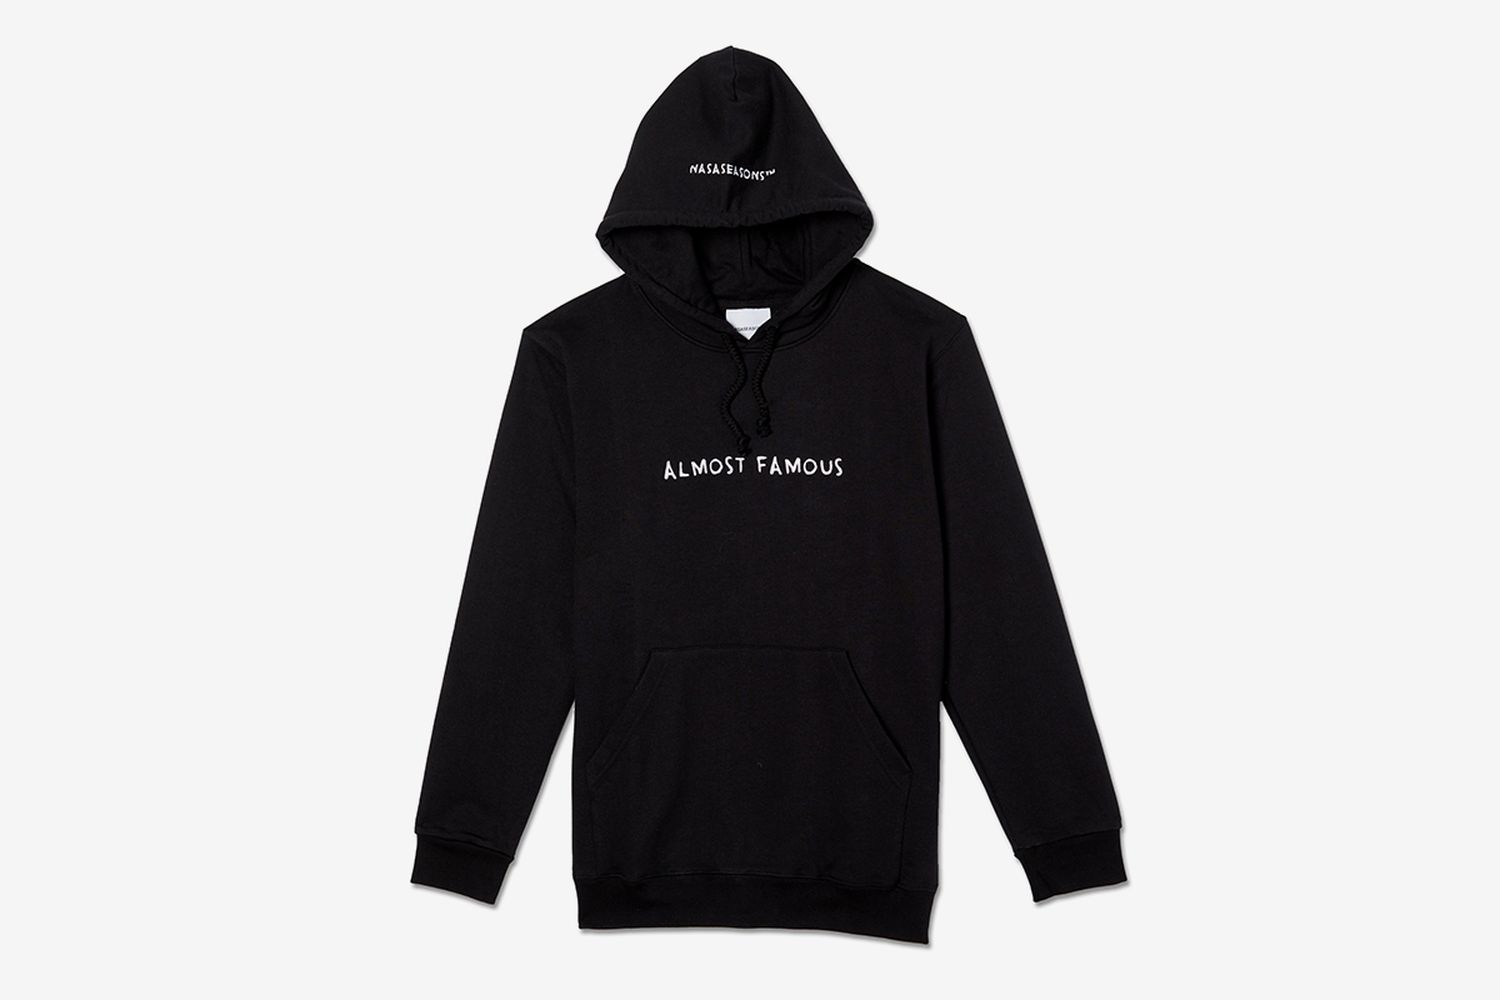 Almost Famous Embroidered Hoodie